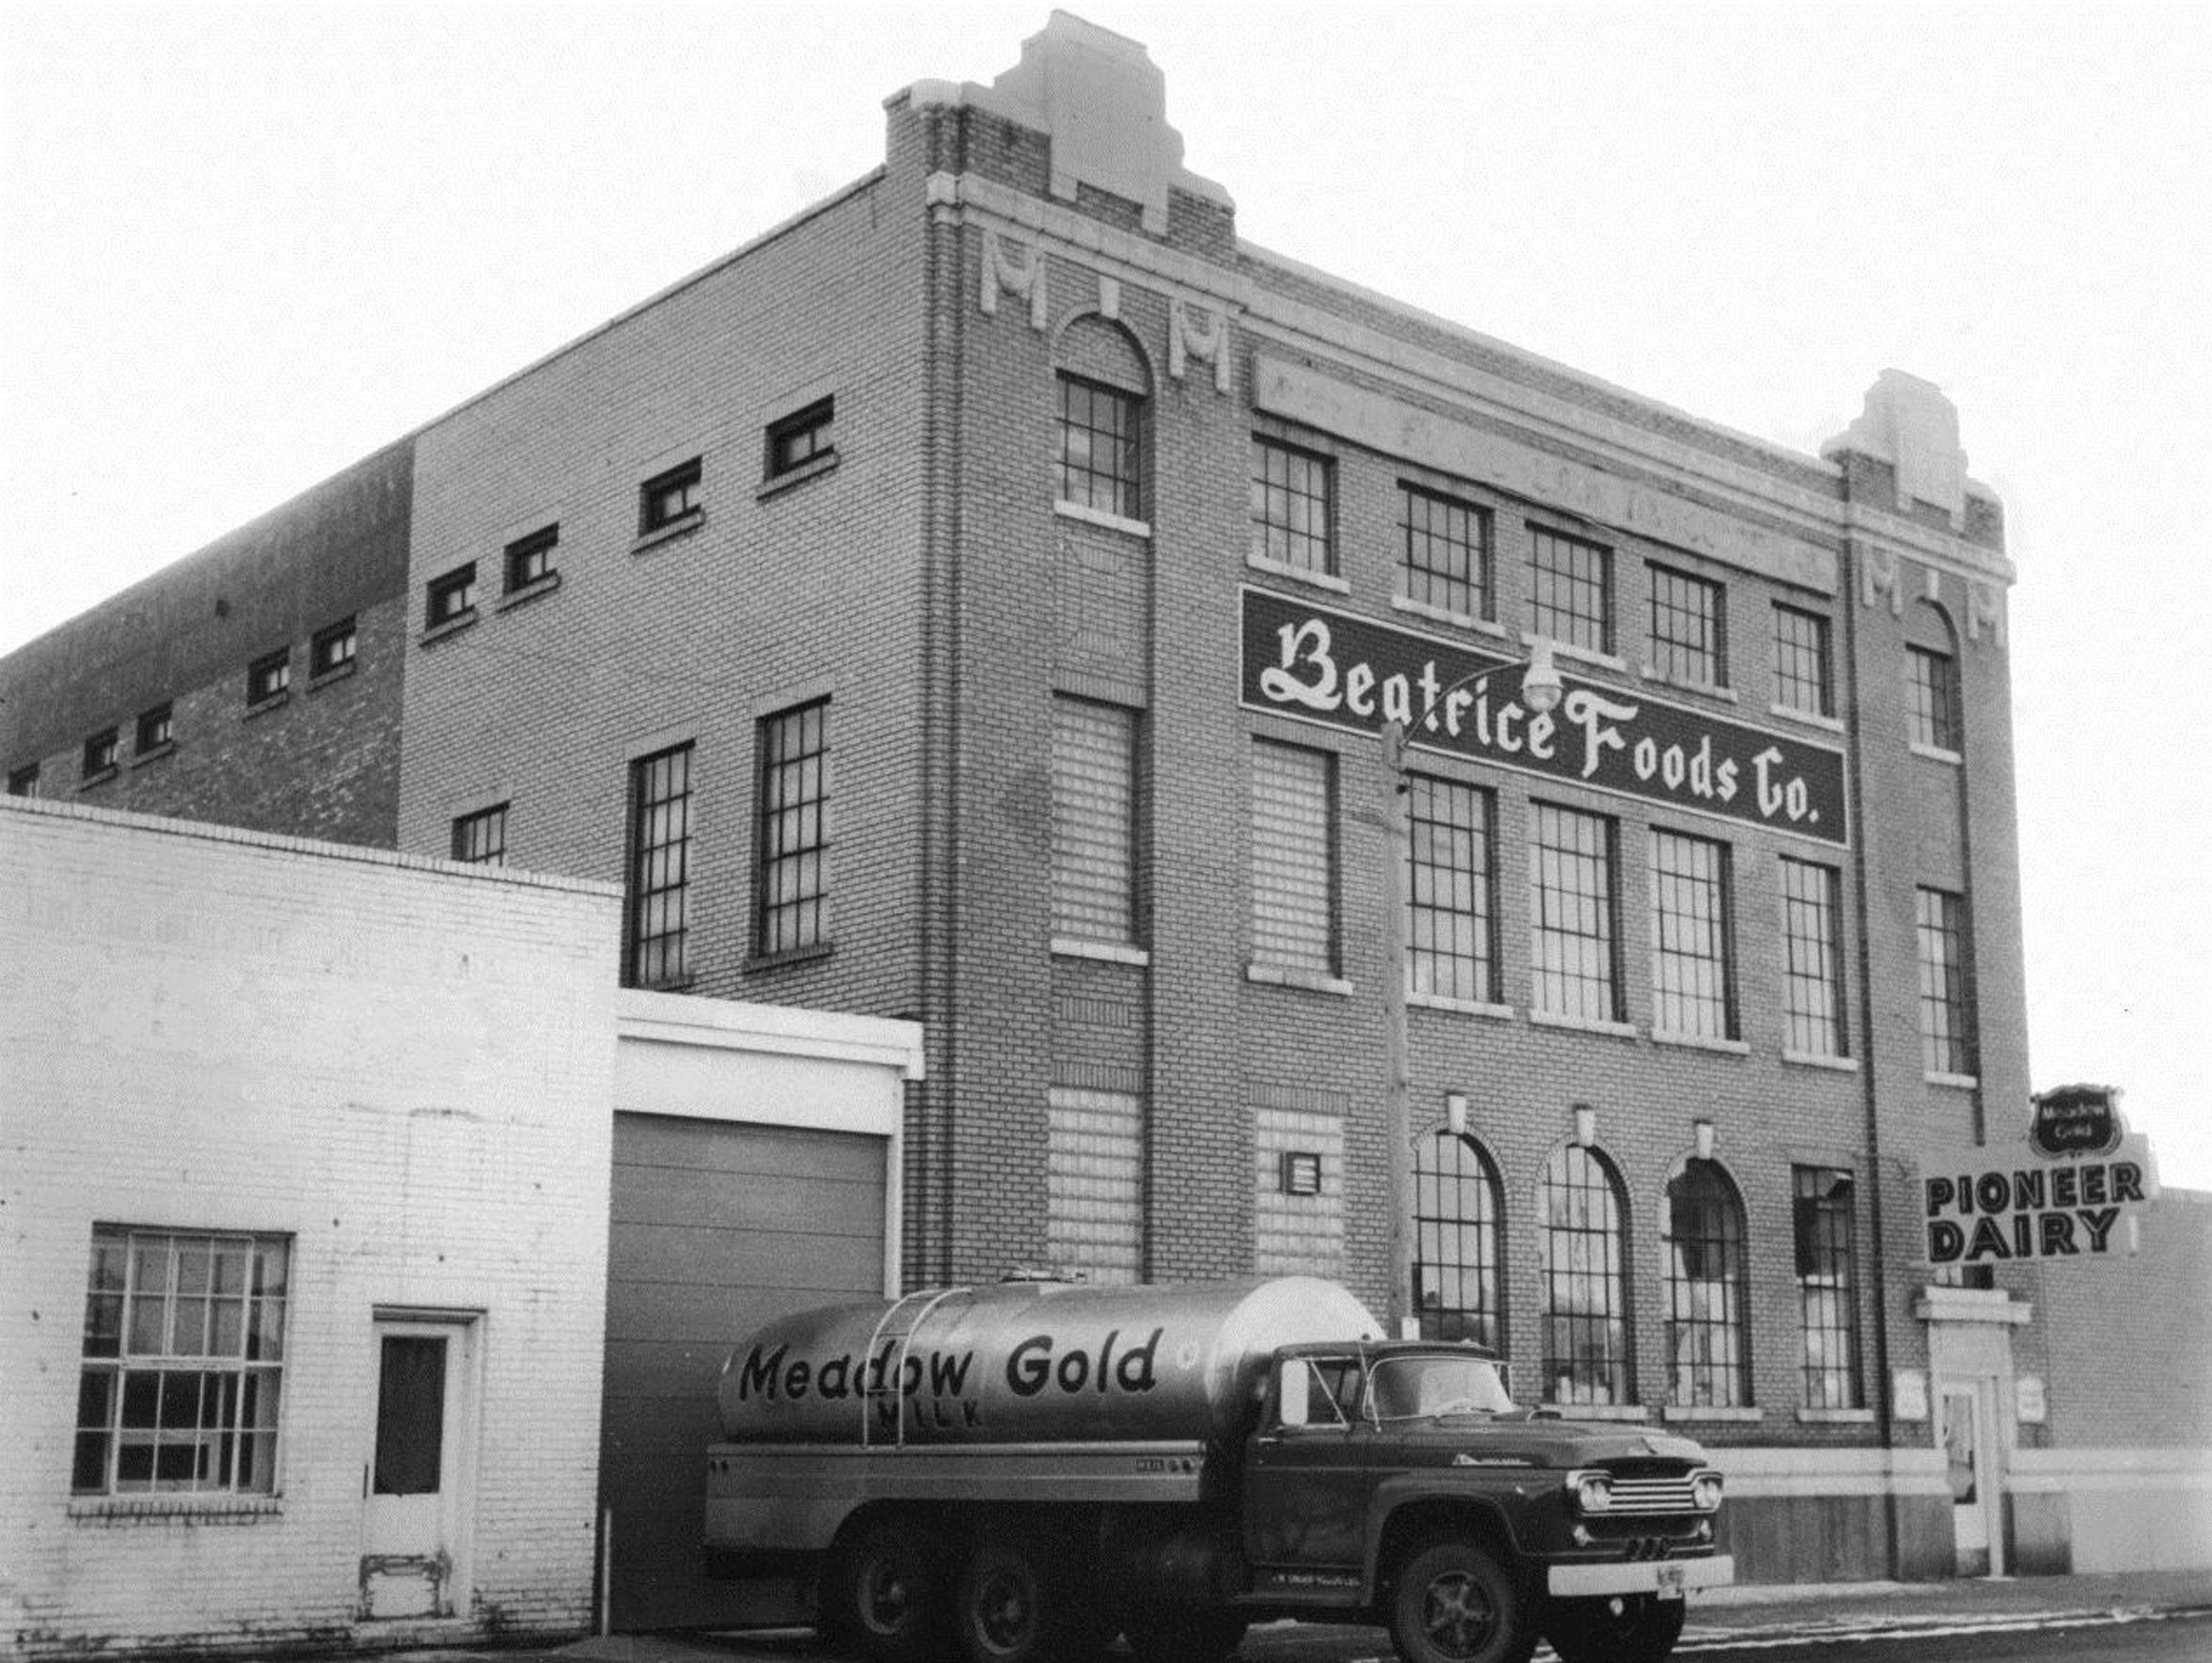 Milk is delivered to the Meadow Gold Dairy in Great